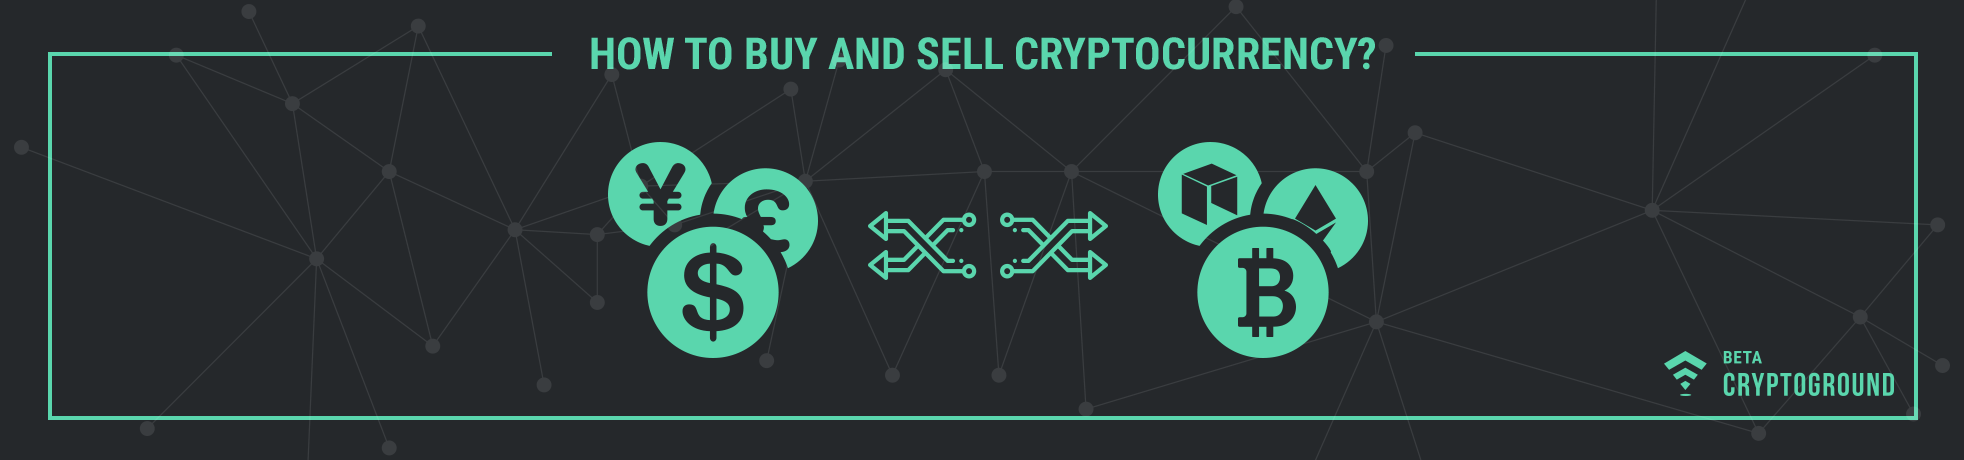 How to Buy and Sell Cryptocurrency?